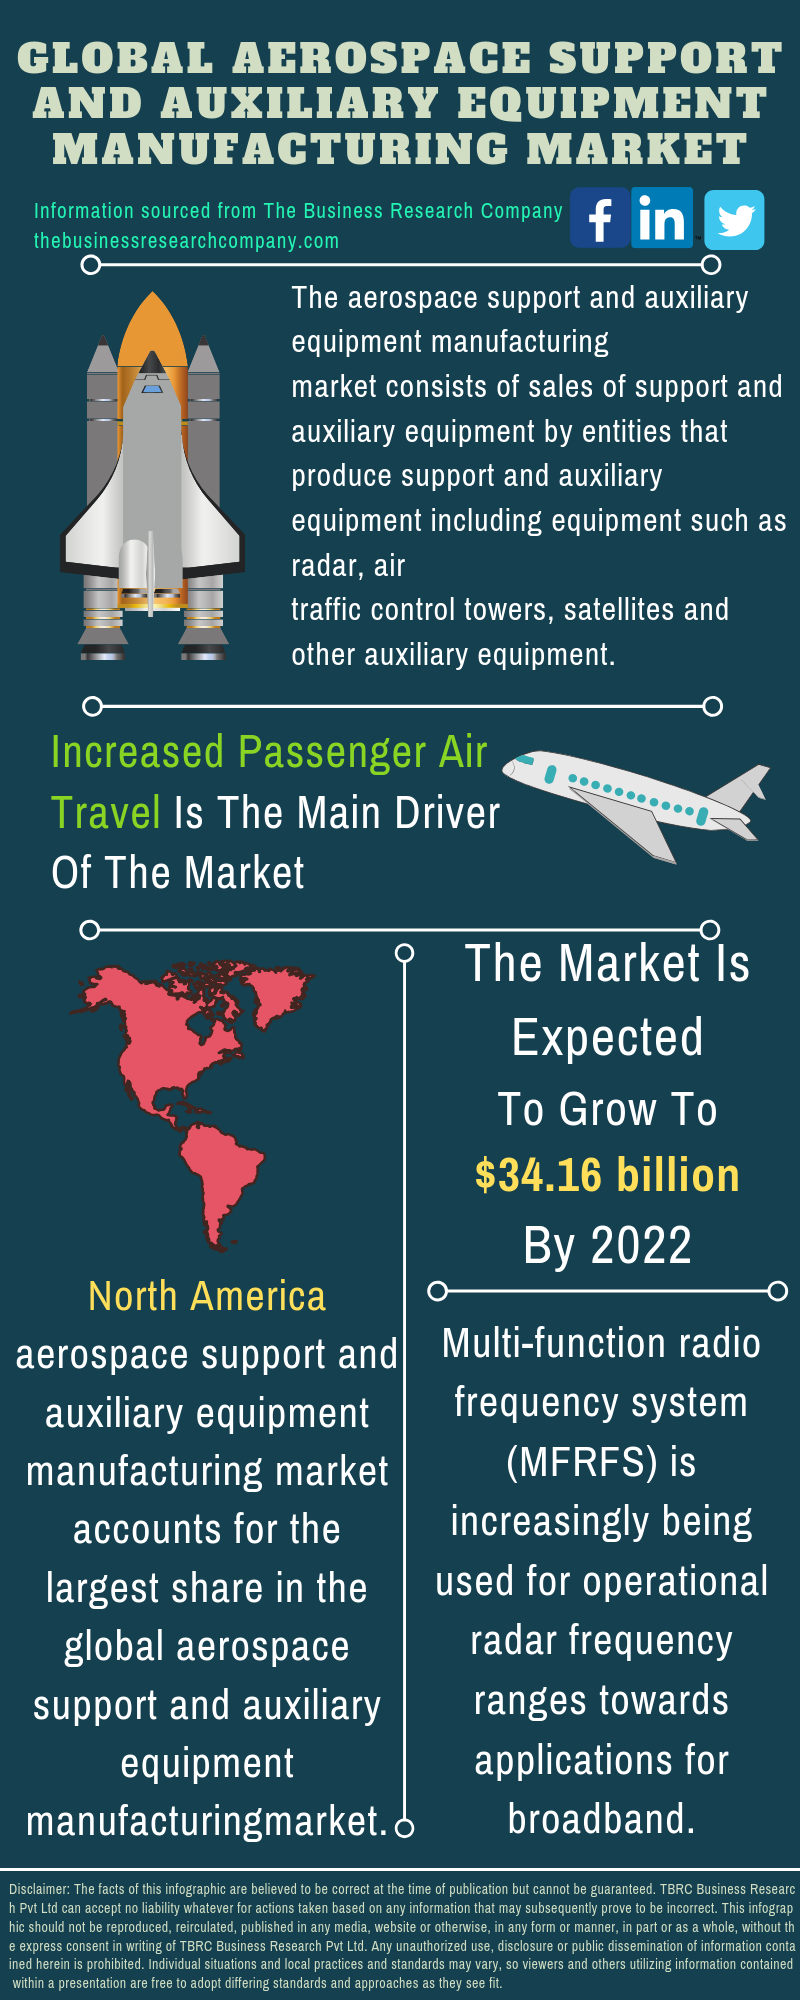 Aerospace Support and Auxiliary Equipment Market